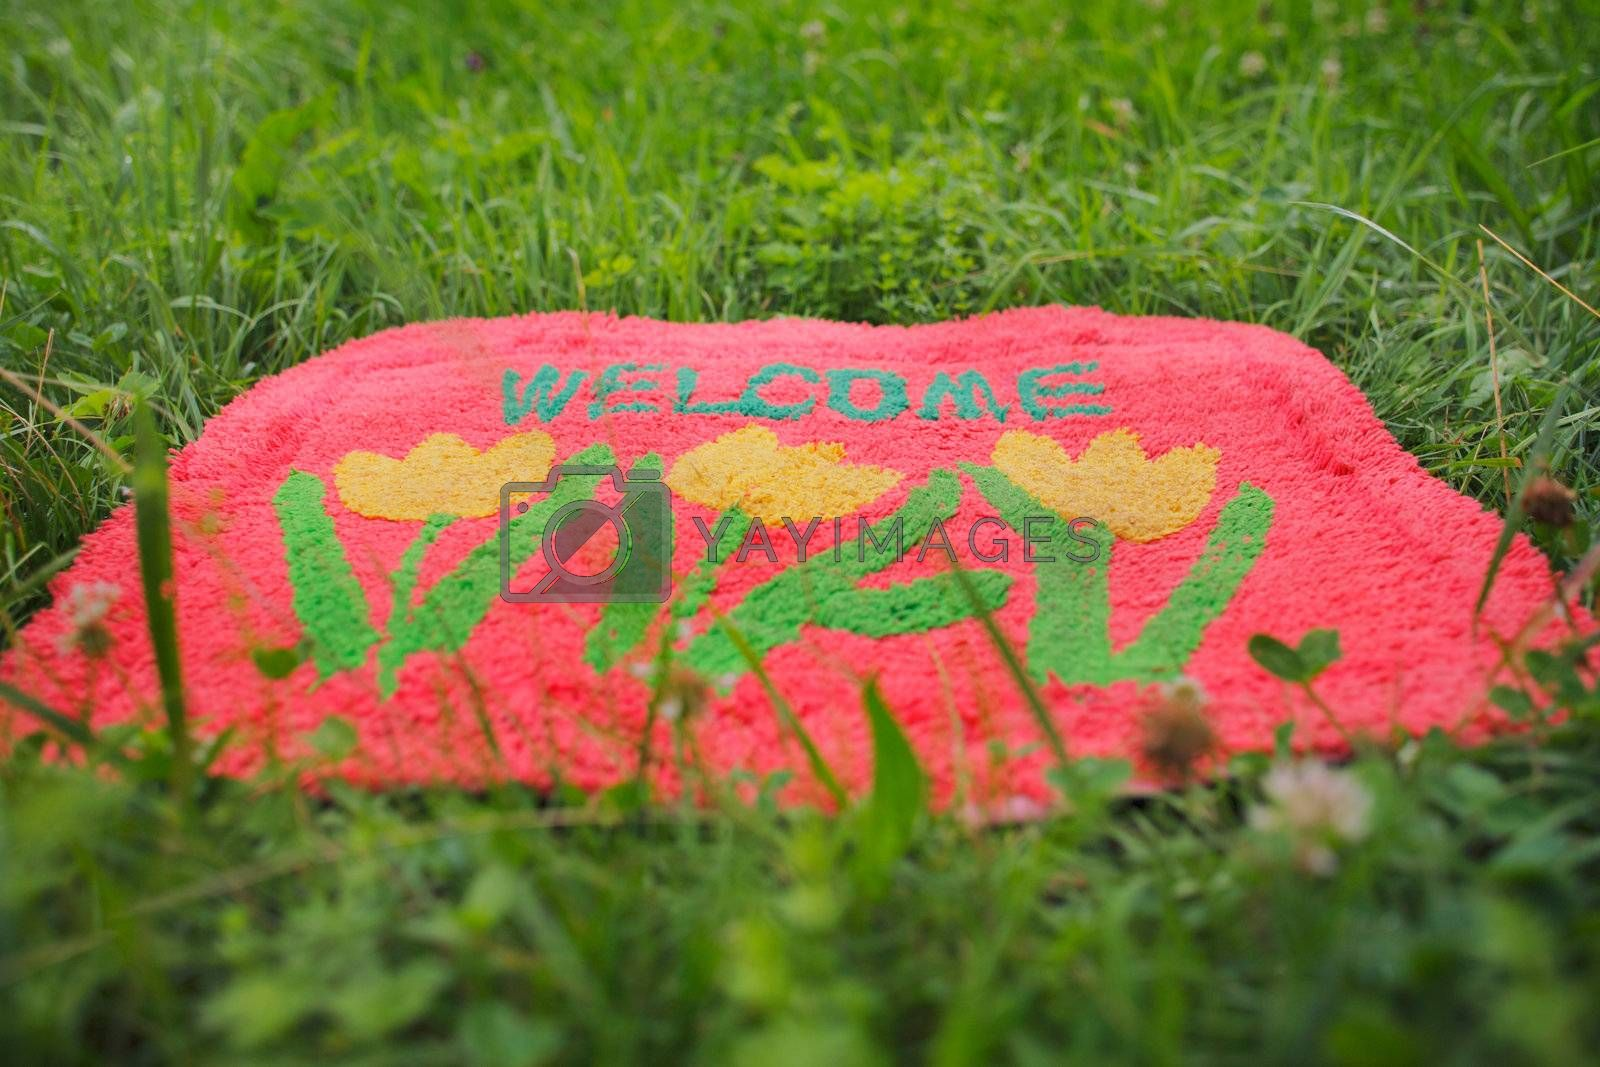 Photo of a welcome mat in front of a green meadow